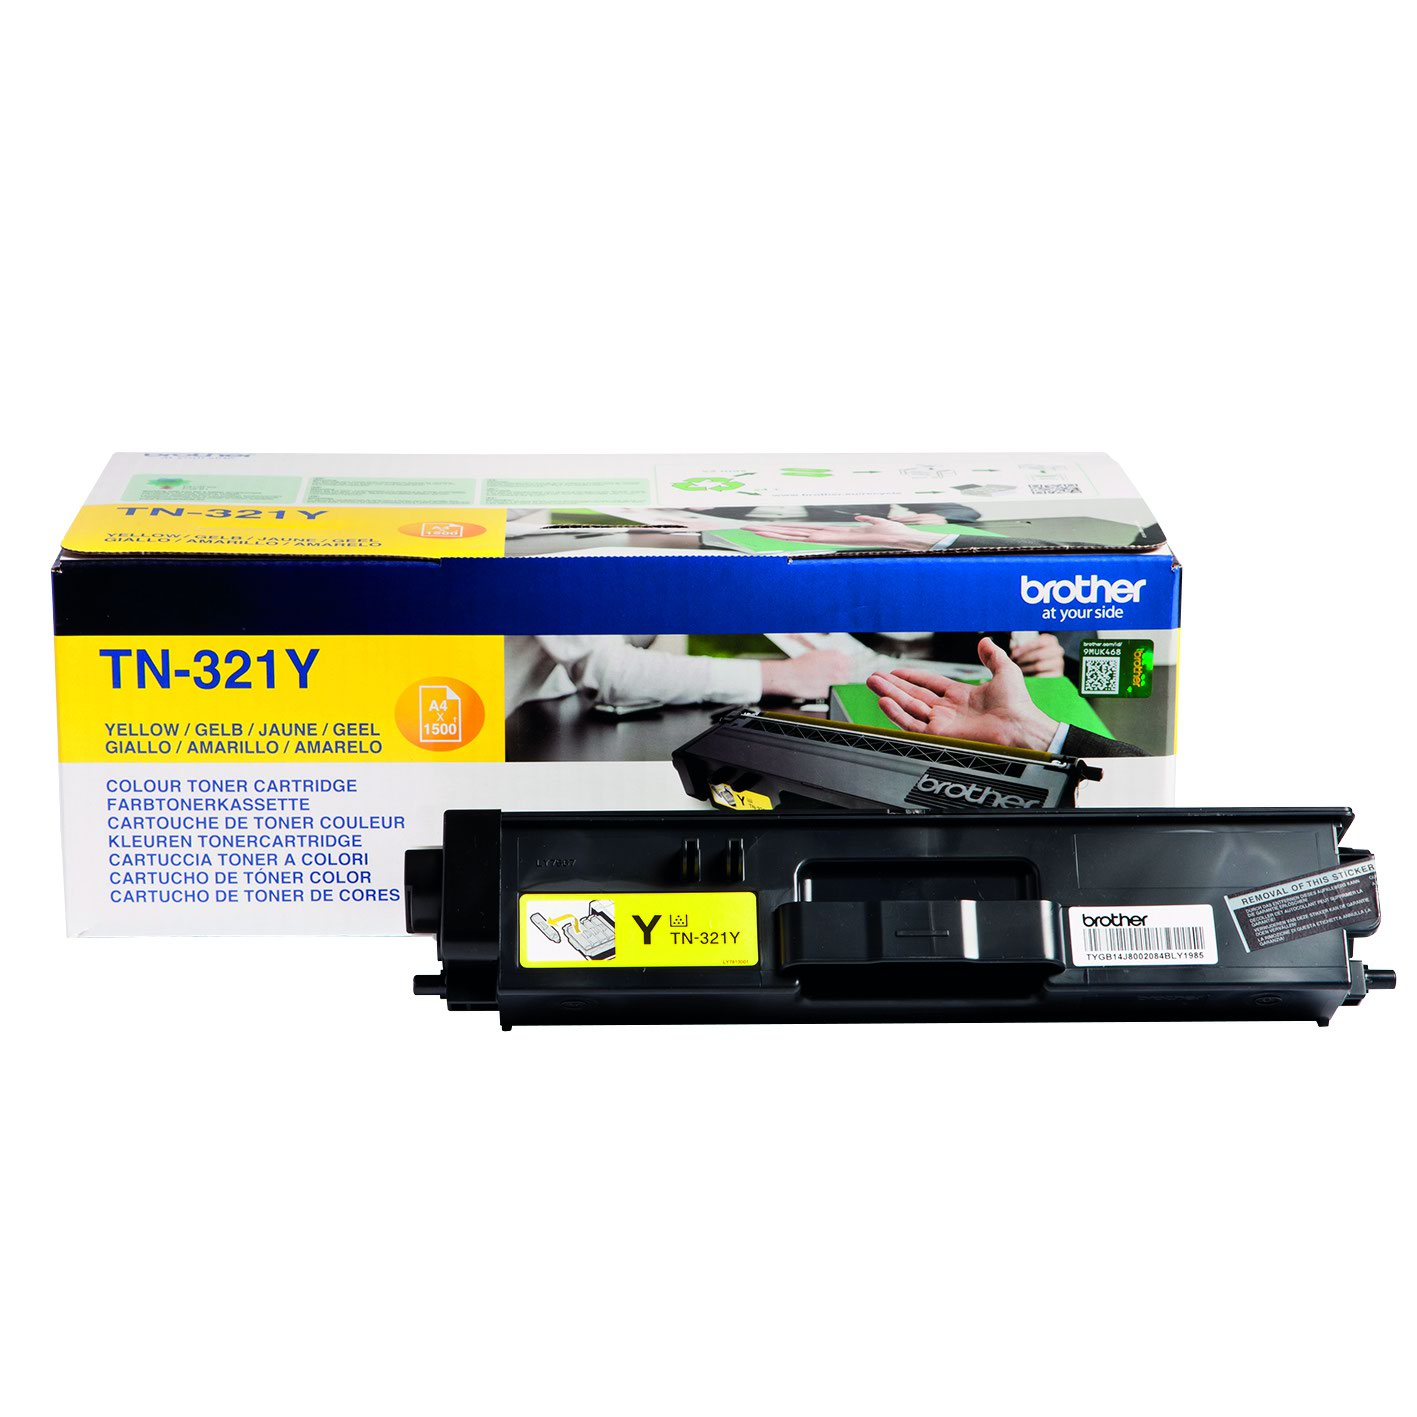 Brother Toner Cartridge Yellow TN321Y